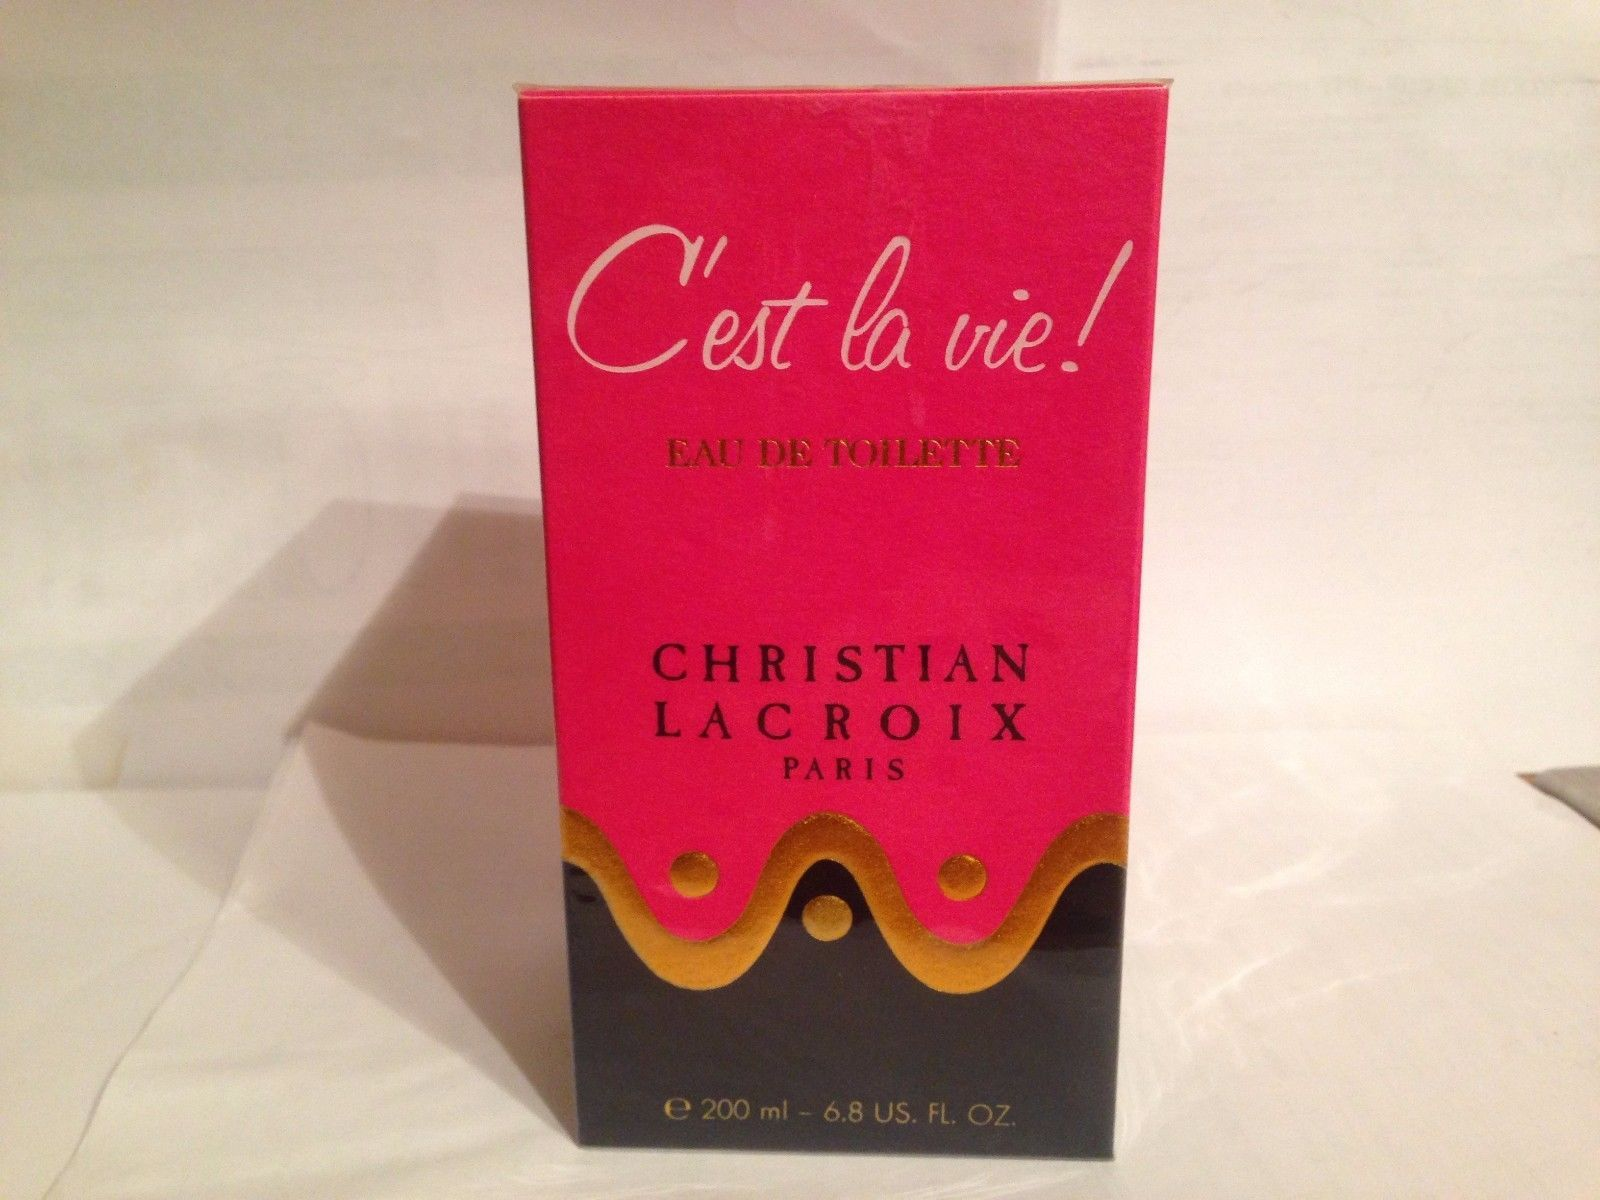 Primary image for RARE CHRISTIAN LACROIX C'EST LA VIE FOR WOMEN 6.8oz/200ml new&sealed